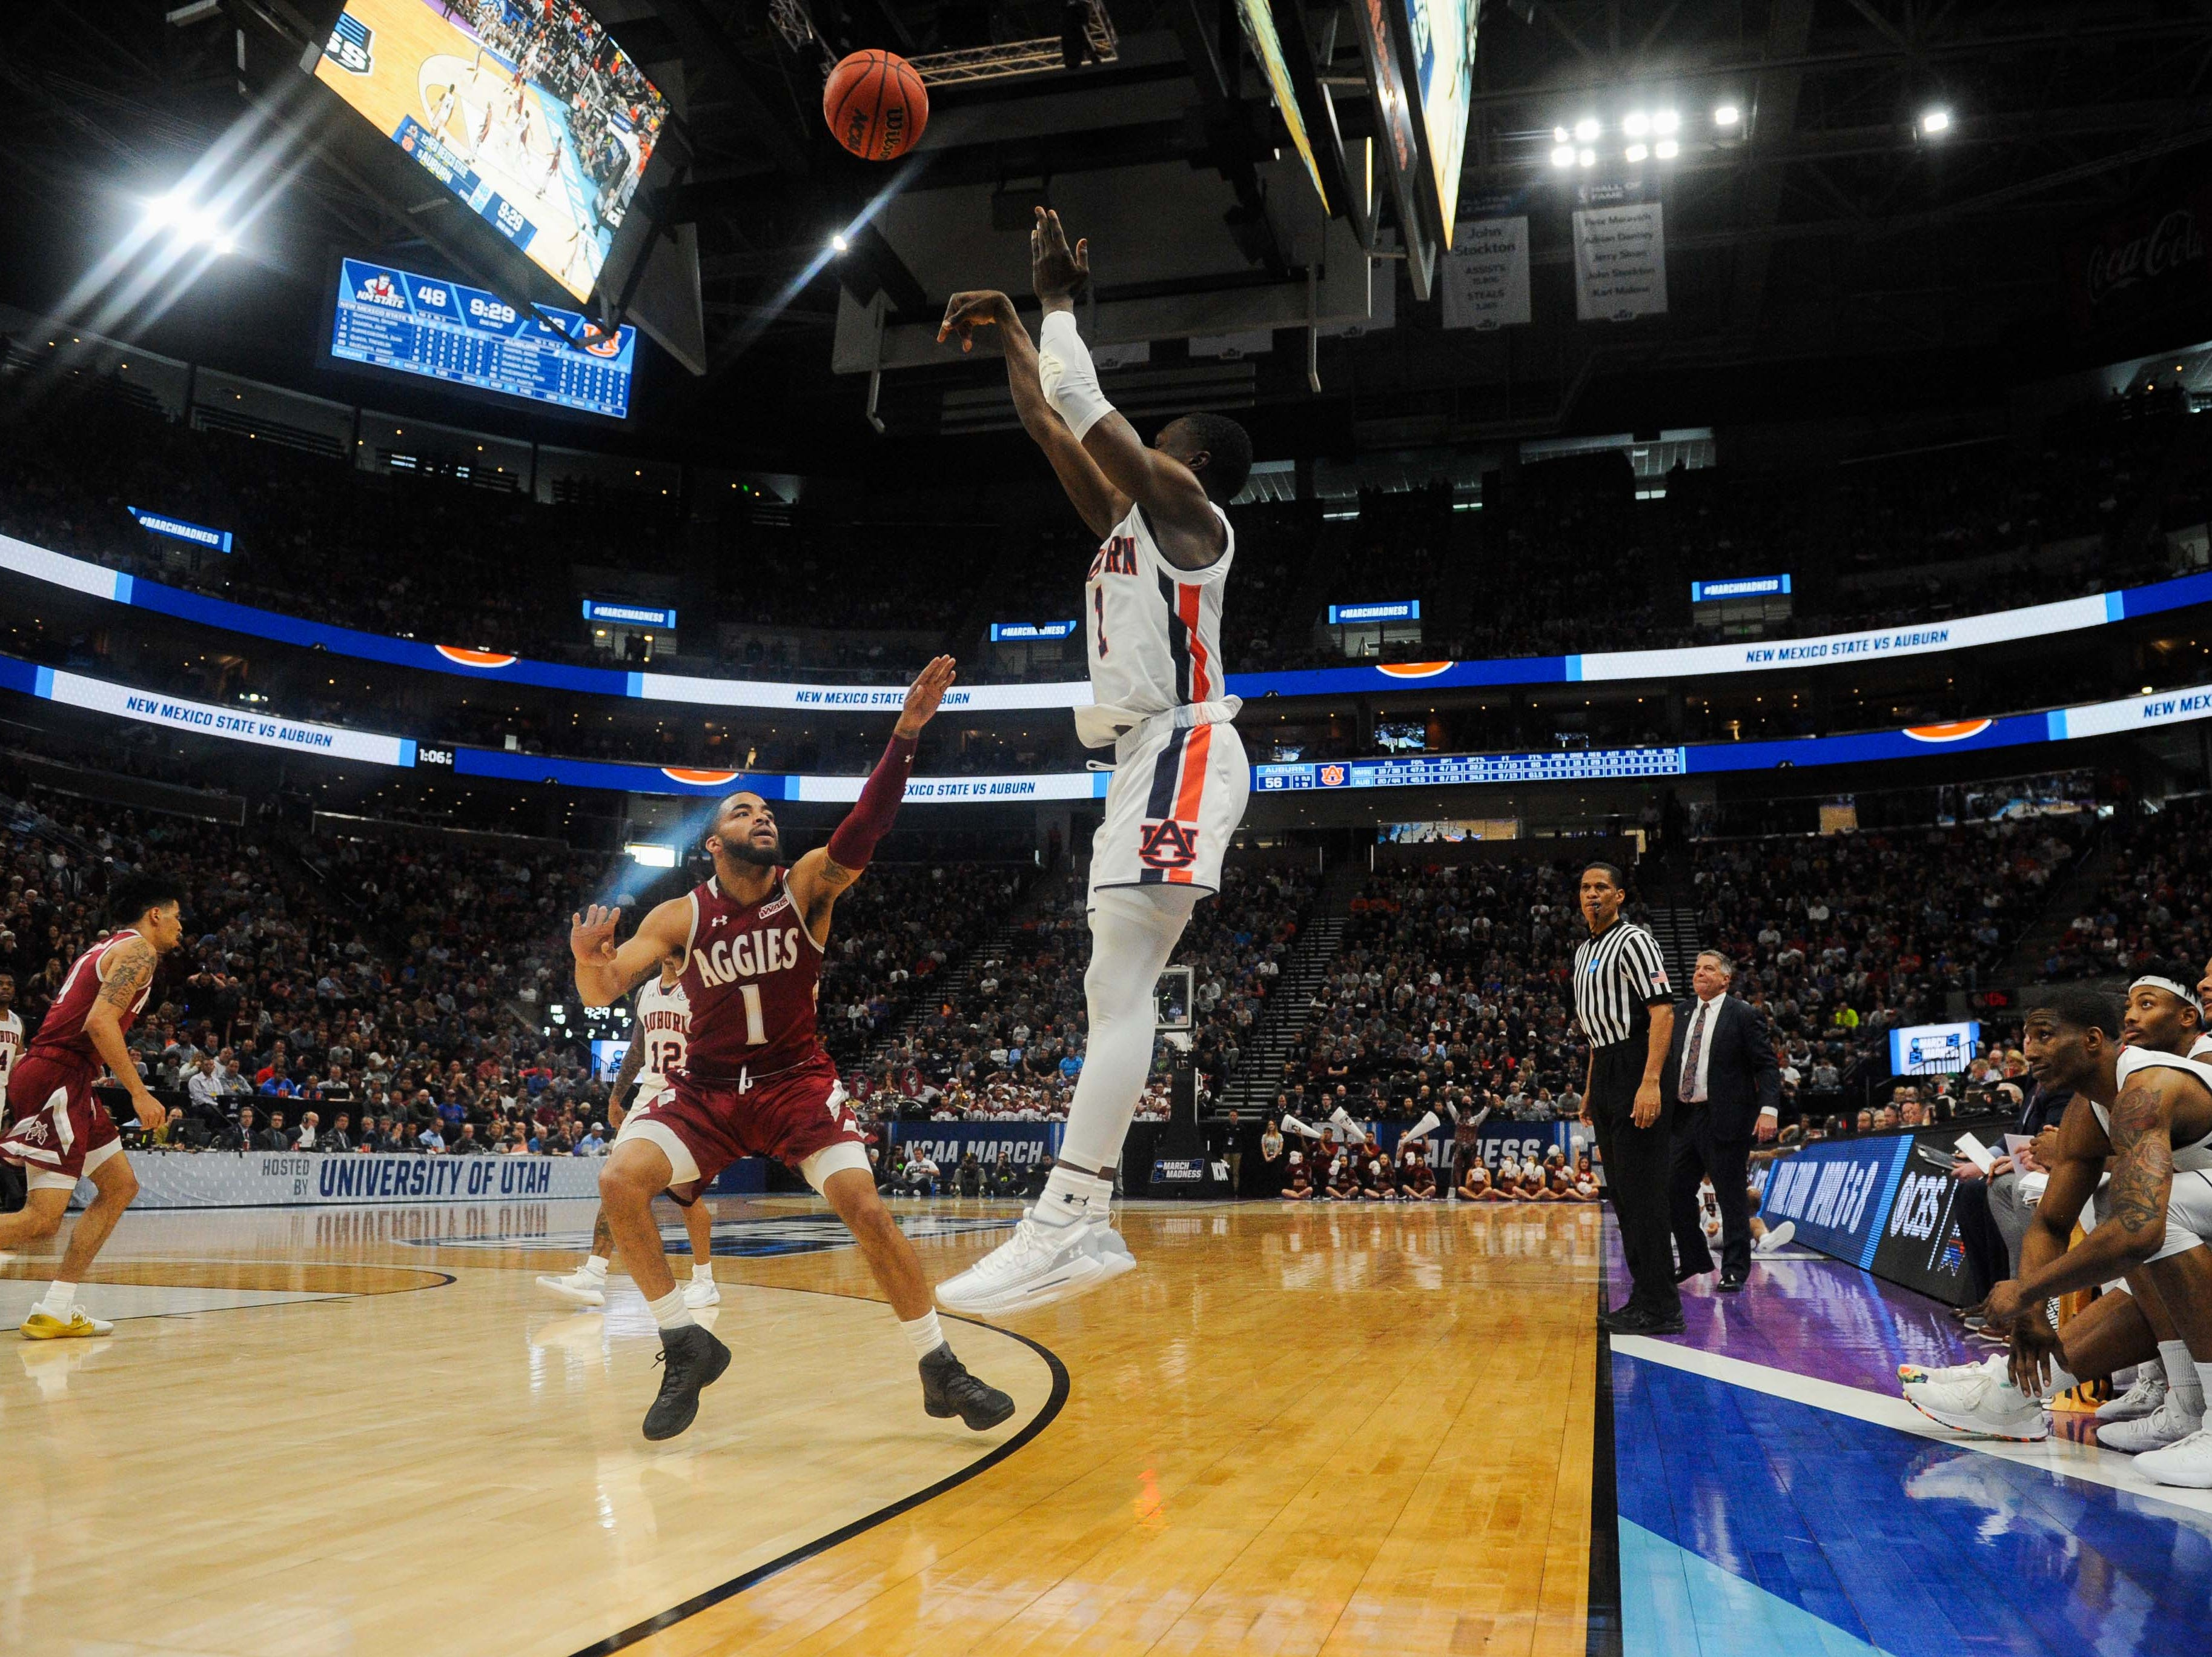 Mar 21, 2019; Salt Lake City, UT, USA; Auburn Tigers guard Jared Harper (1) shoots a three-pointer over New Mexico State Aggies guard Shunn Buchanan (1) during the second half in the first round of the 2019 NCAA Tournament at Vivint Smart Home Arena. Mandatory Credit: Gary A. Vasquez-USA TODAY Sports